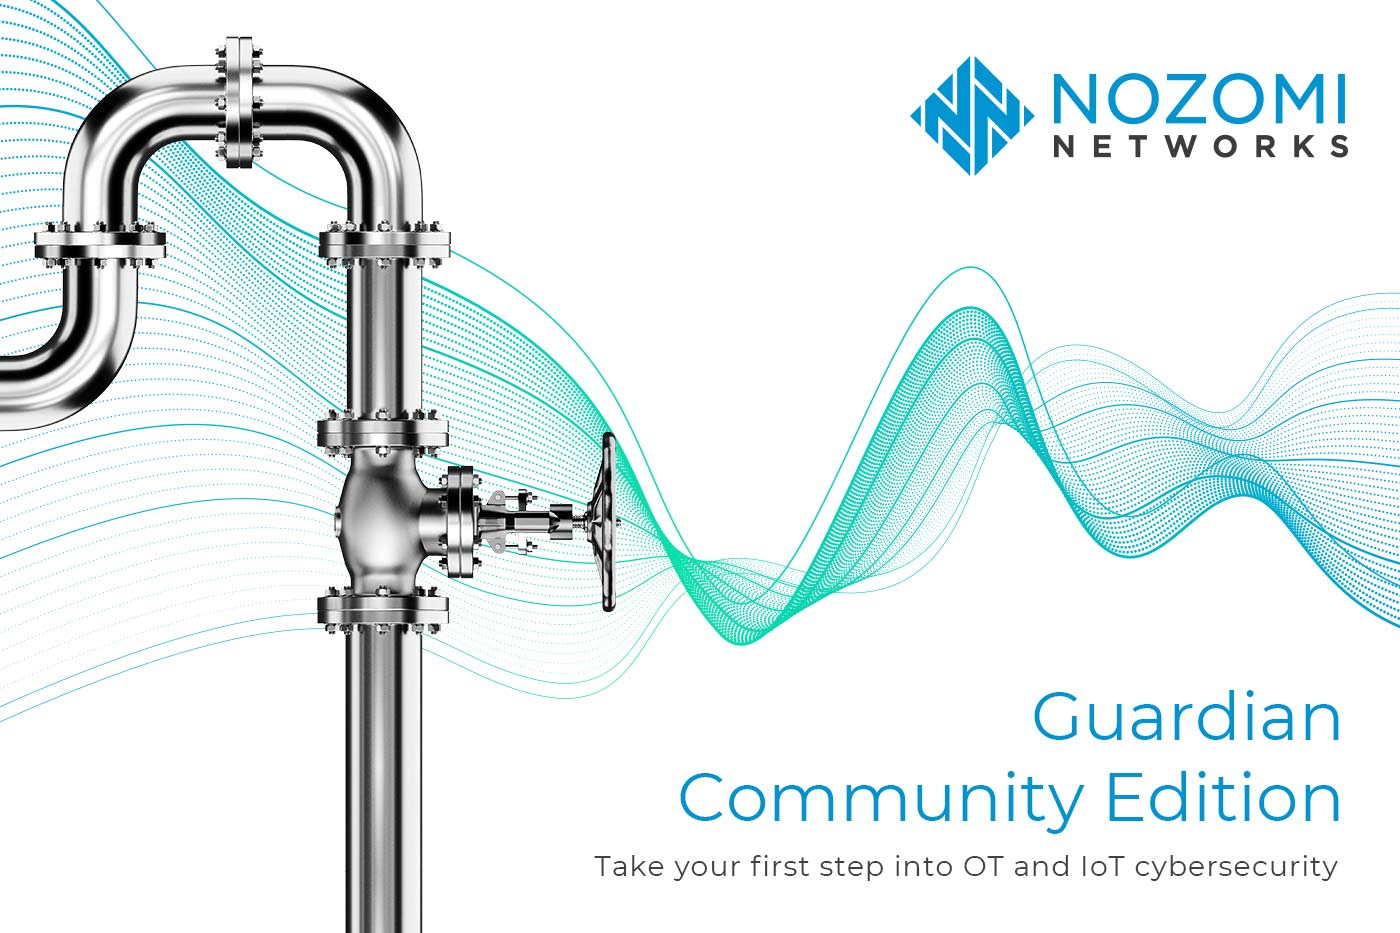 Meet Guardian Community Edition – a Free Tool for OT & IoT Security